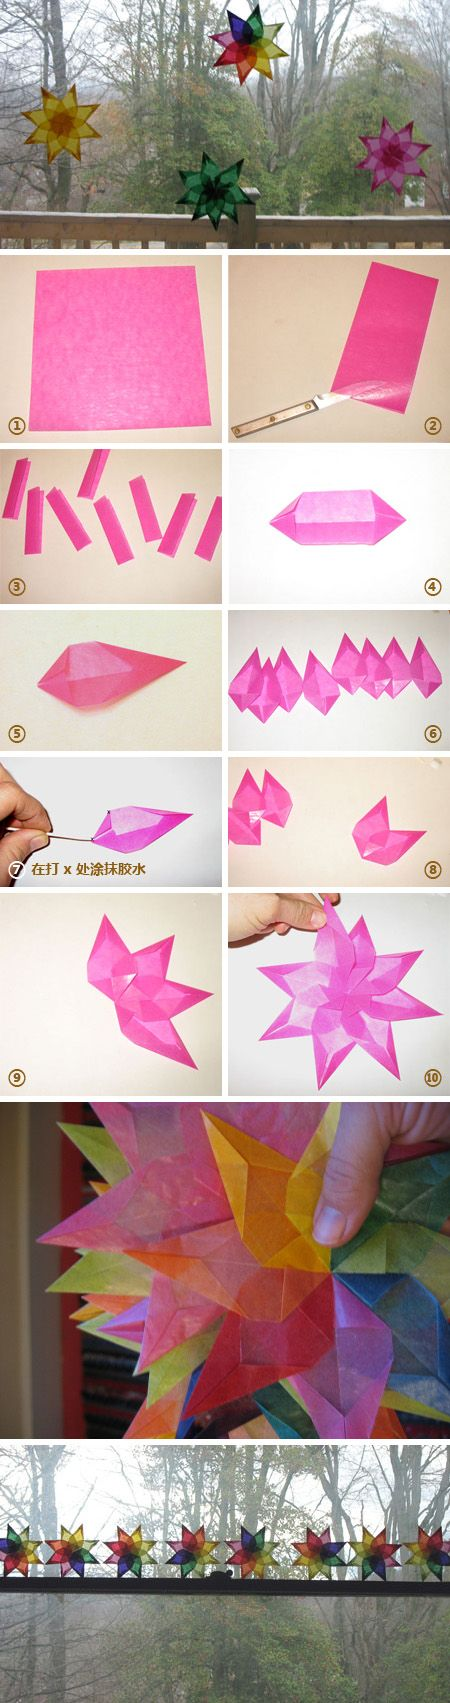 Colorful the stars Zhichuang flowers, made with translucent oiled paper.